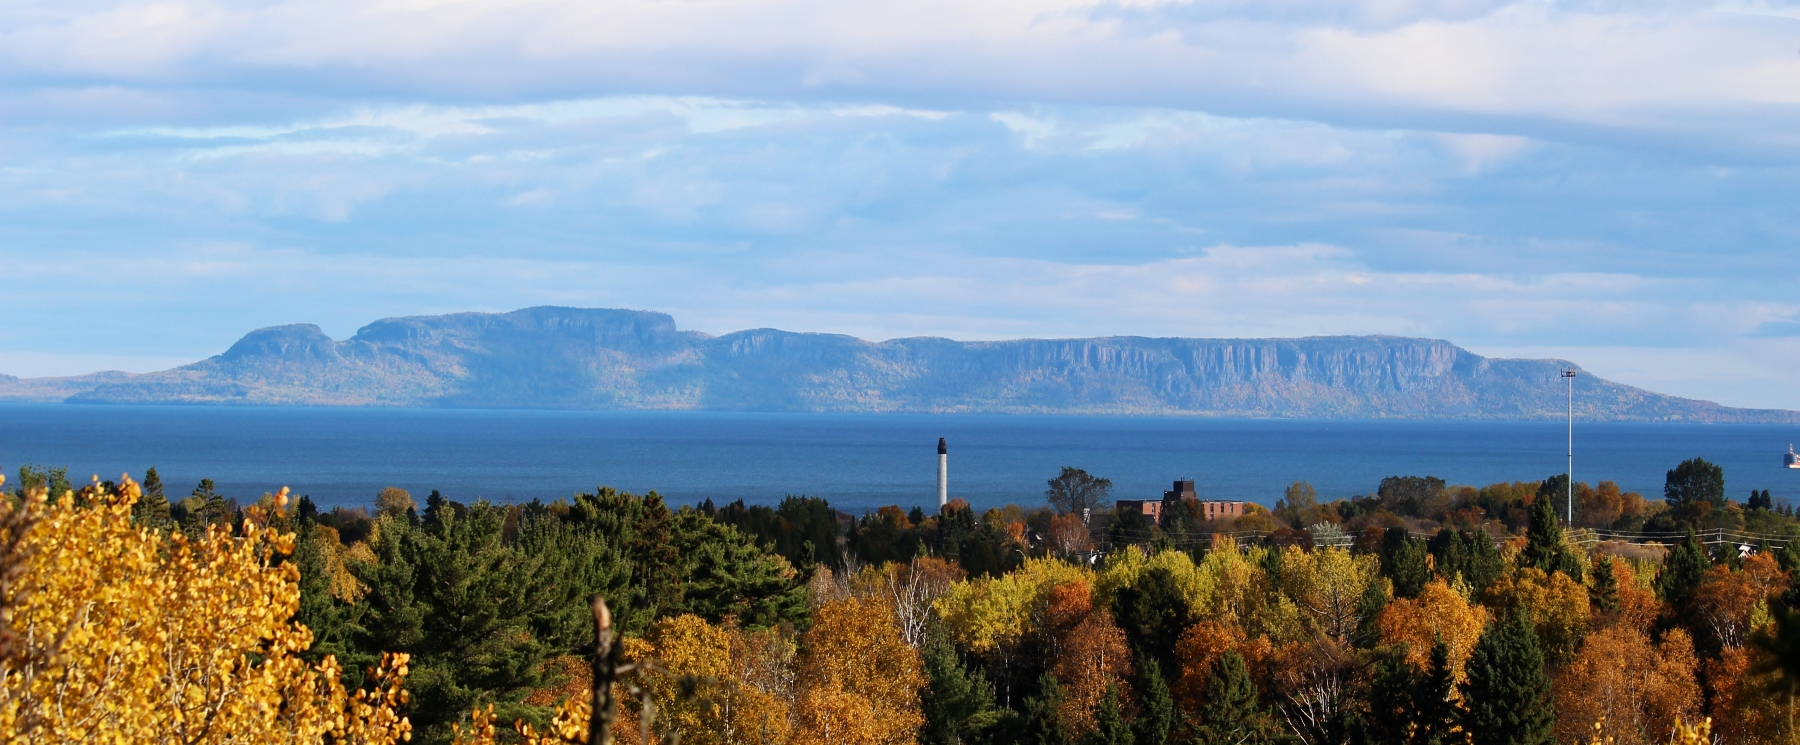 Sleeping Giant from MOunt McKay scenic lookout in Fall